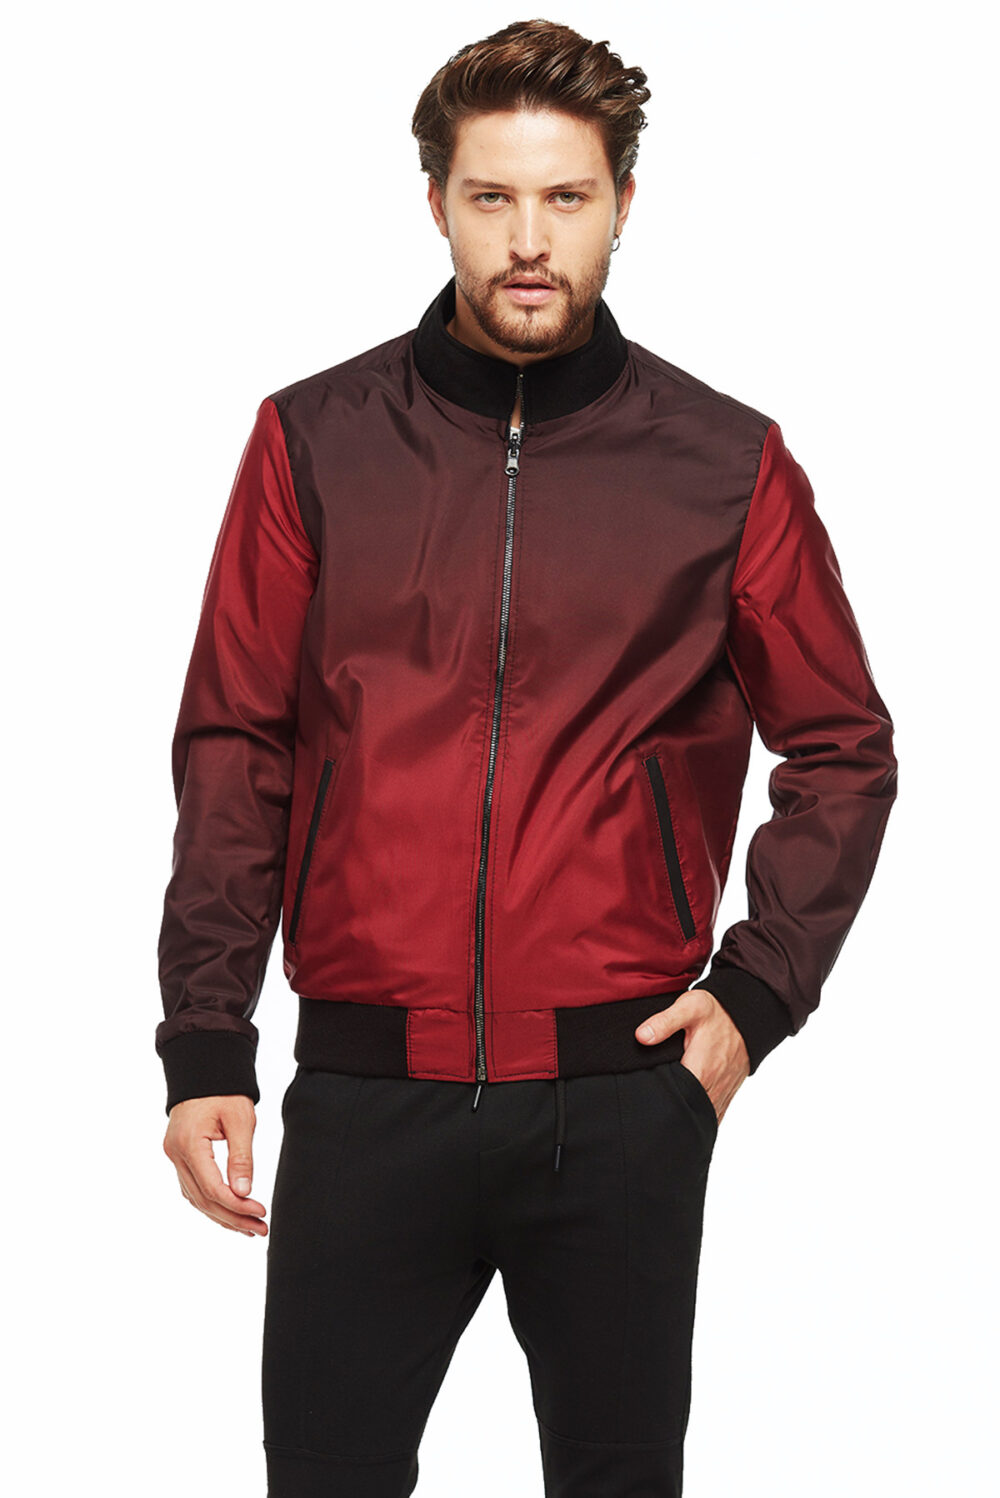 real leather jacket brands